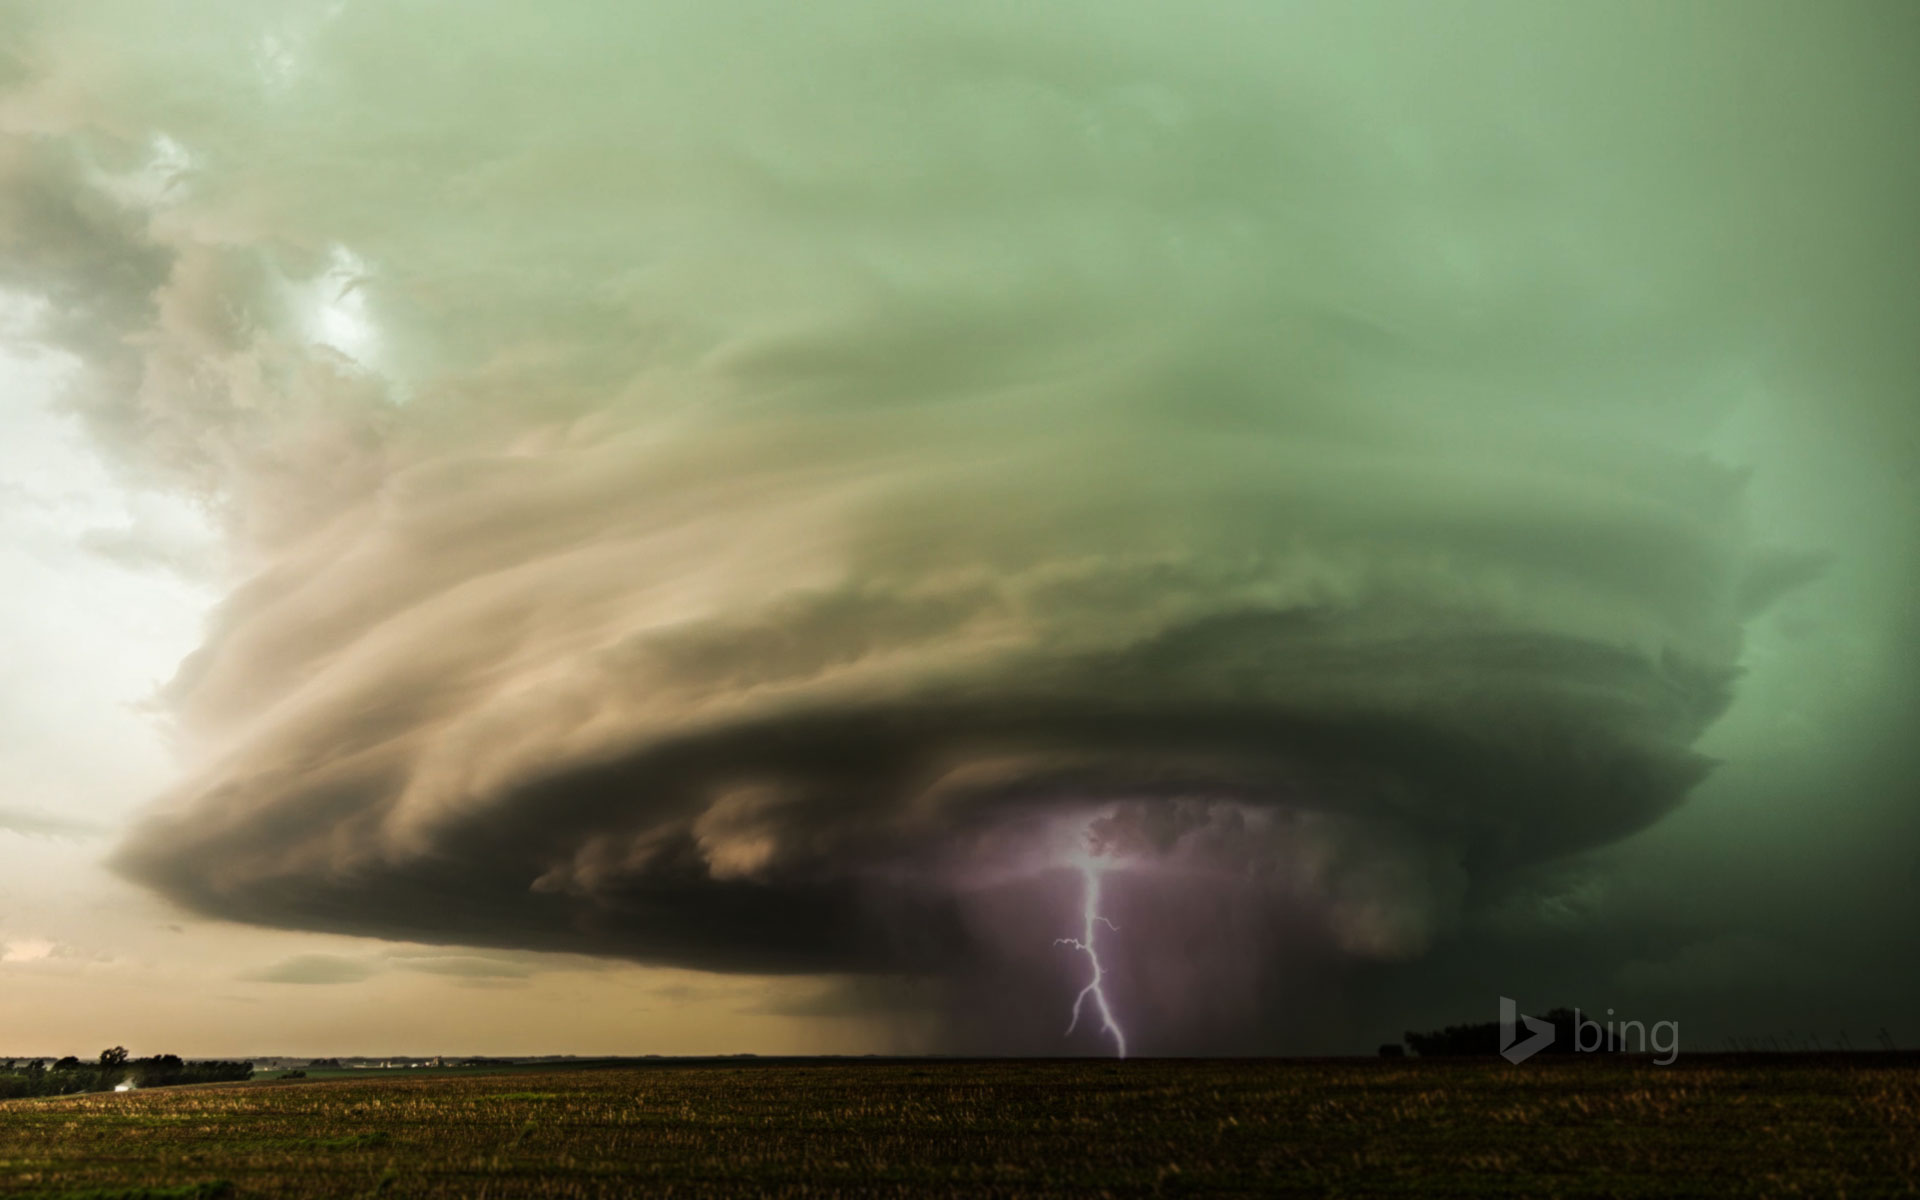 Supercell storm over West Point, Nebraska